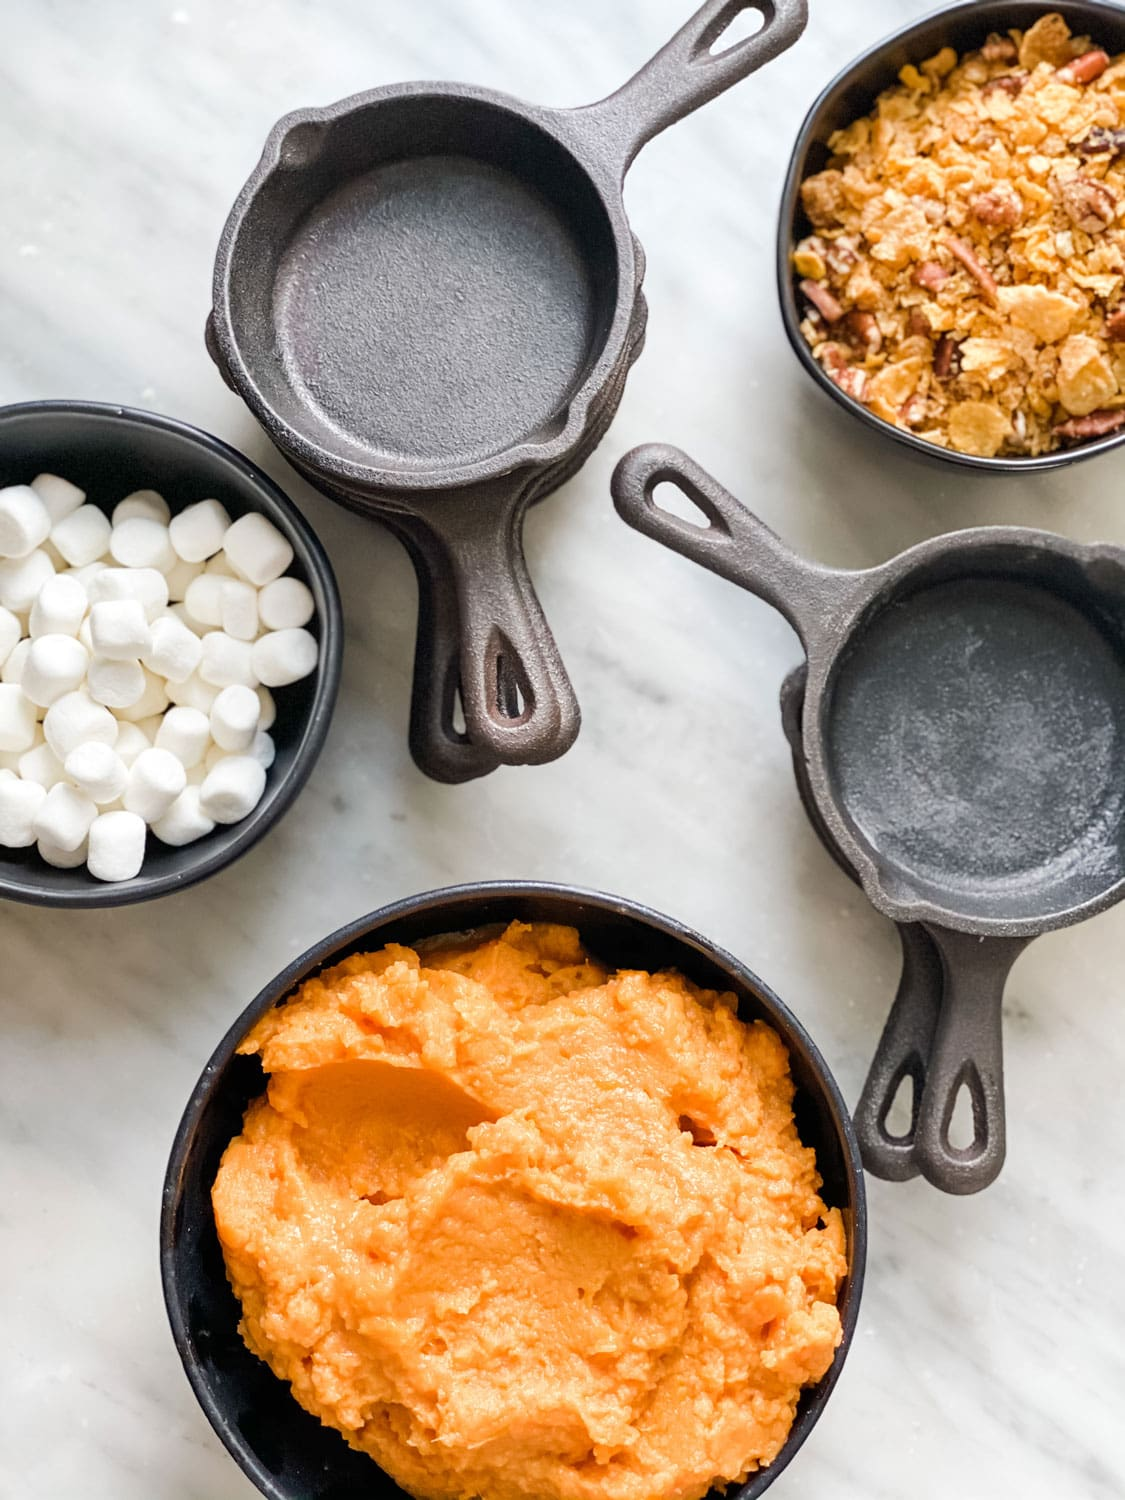 small bowls with sweet potatoes and marshmallows, mini lodge skillets